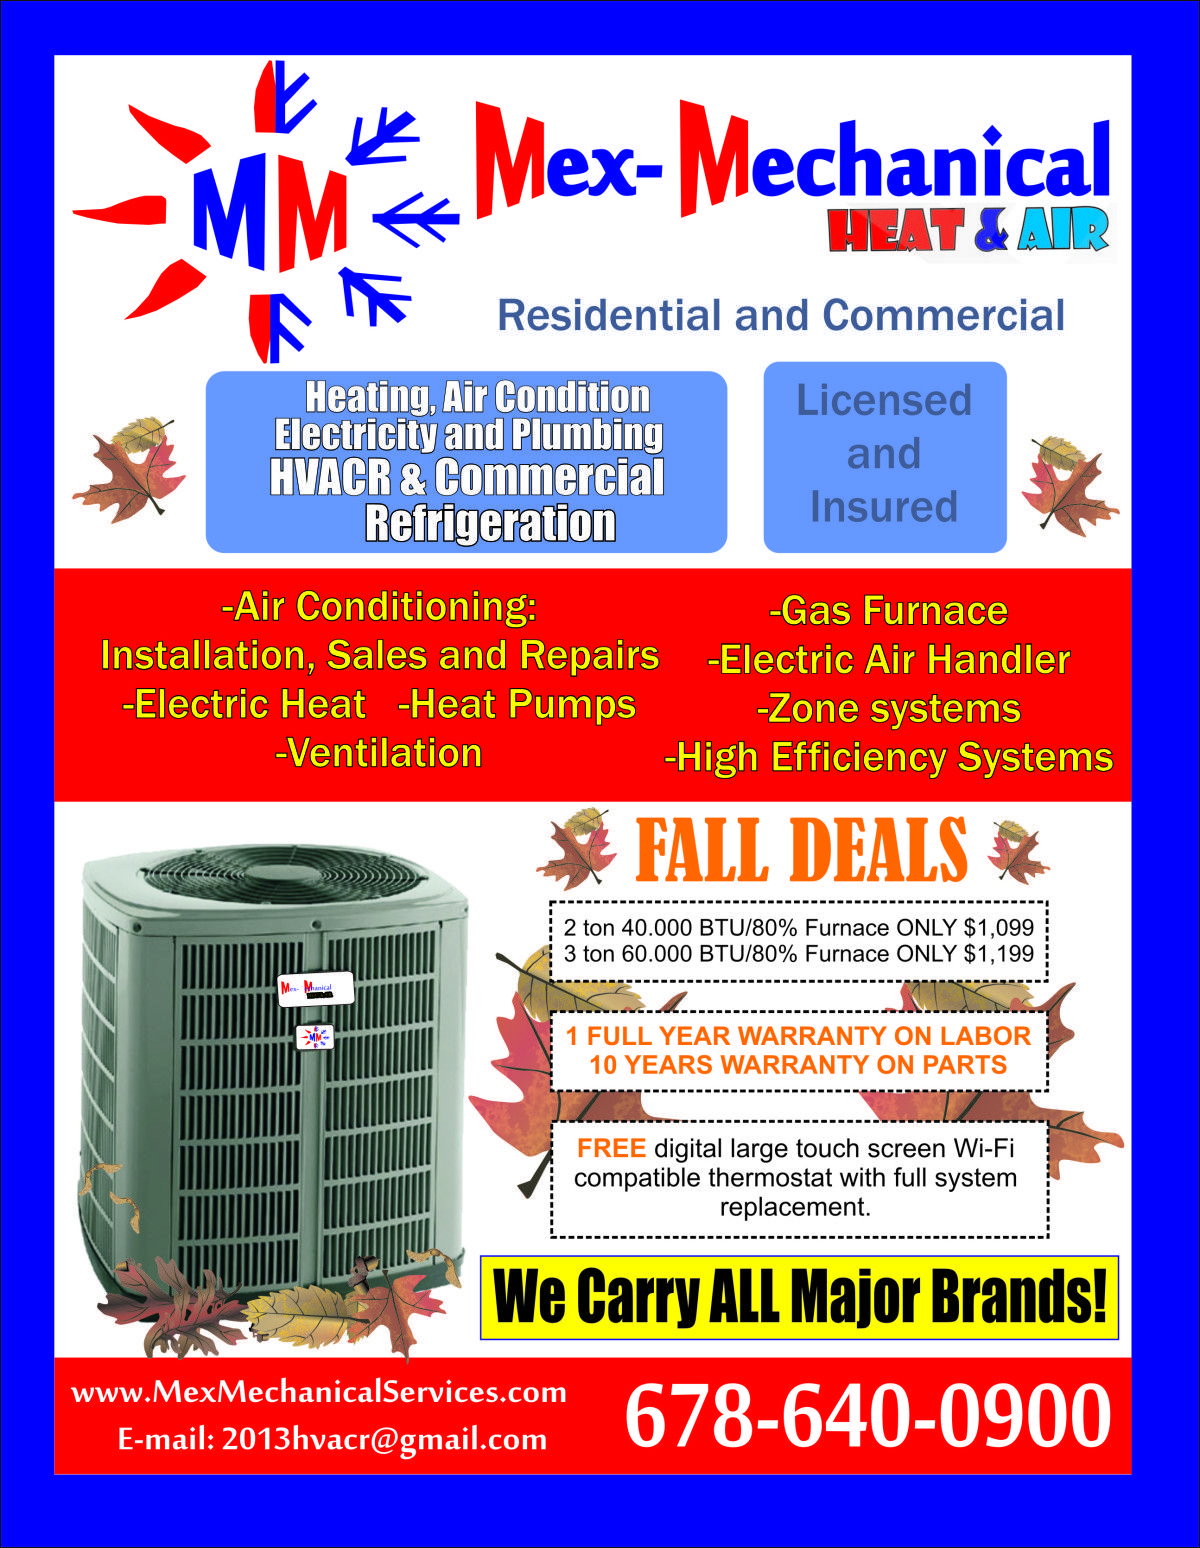 38 Aircon Servicing Singapore Flyer Samples Commercial Heating Gas Furnace Installation Aircon